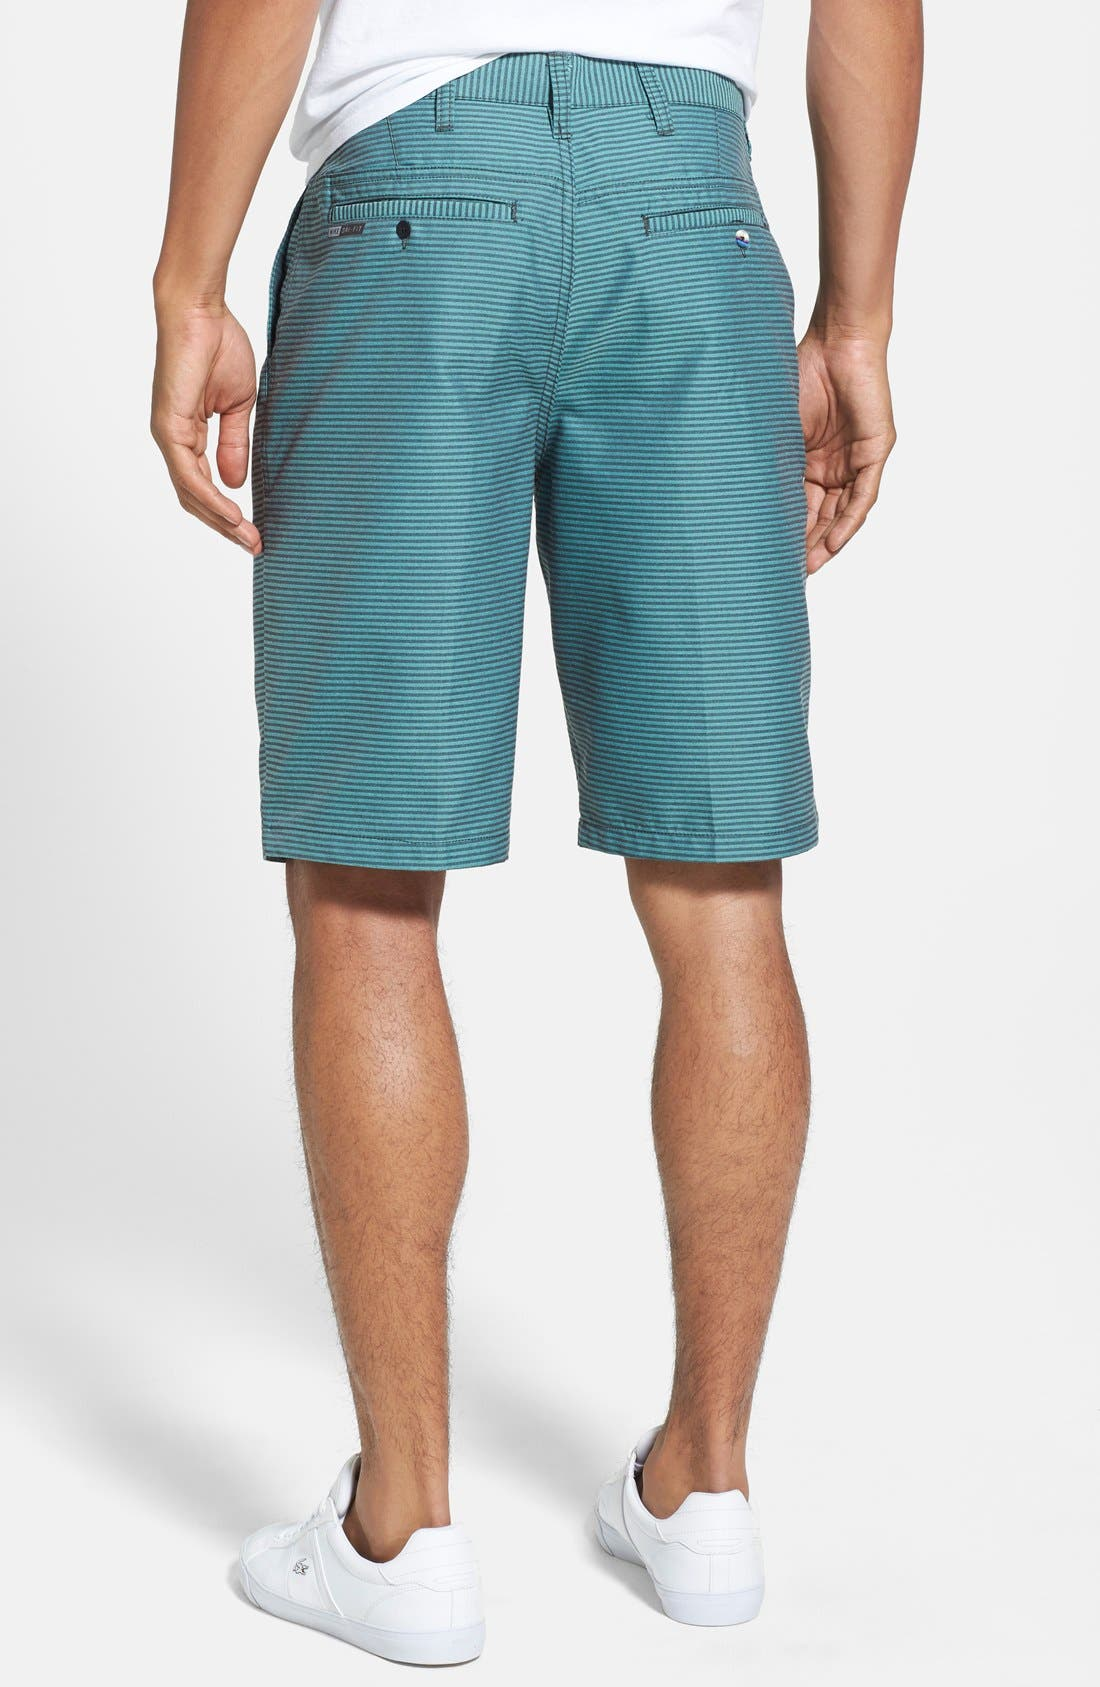 Alternate Image 2  - Hurley 'Hickory' Herringbone Dri-FIT Shorts